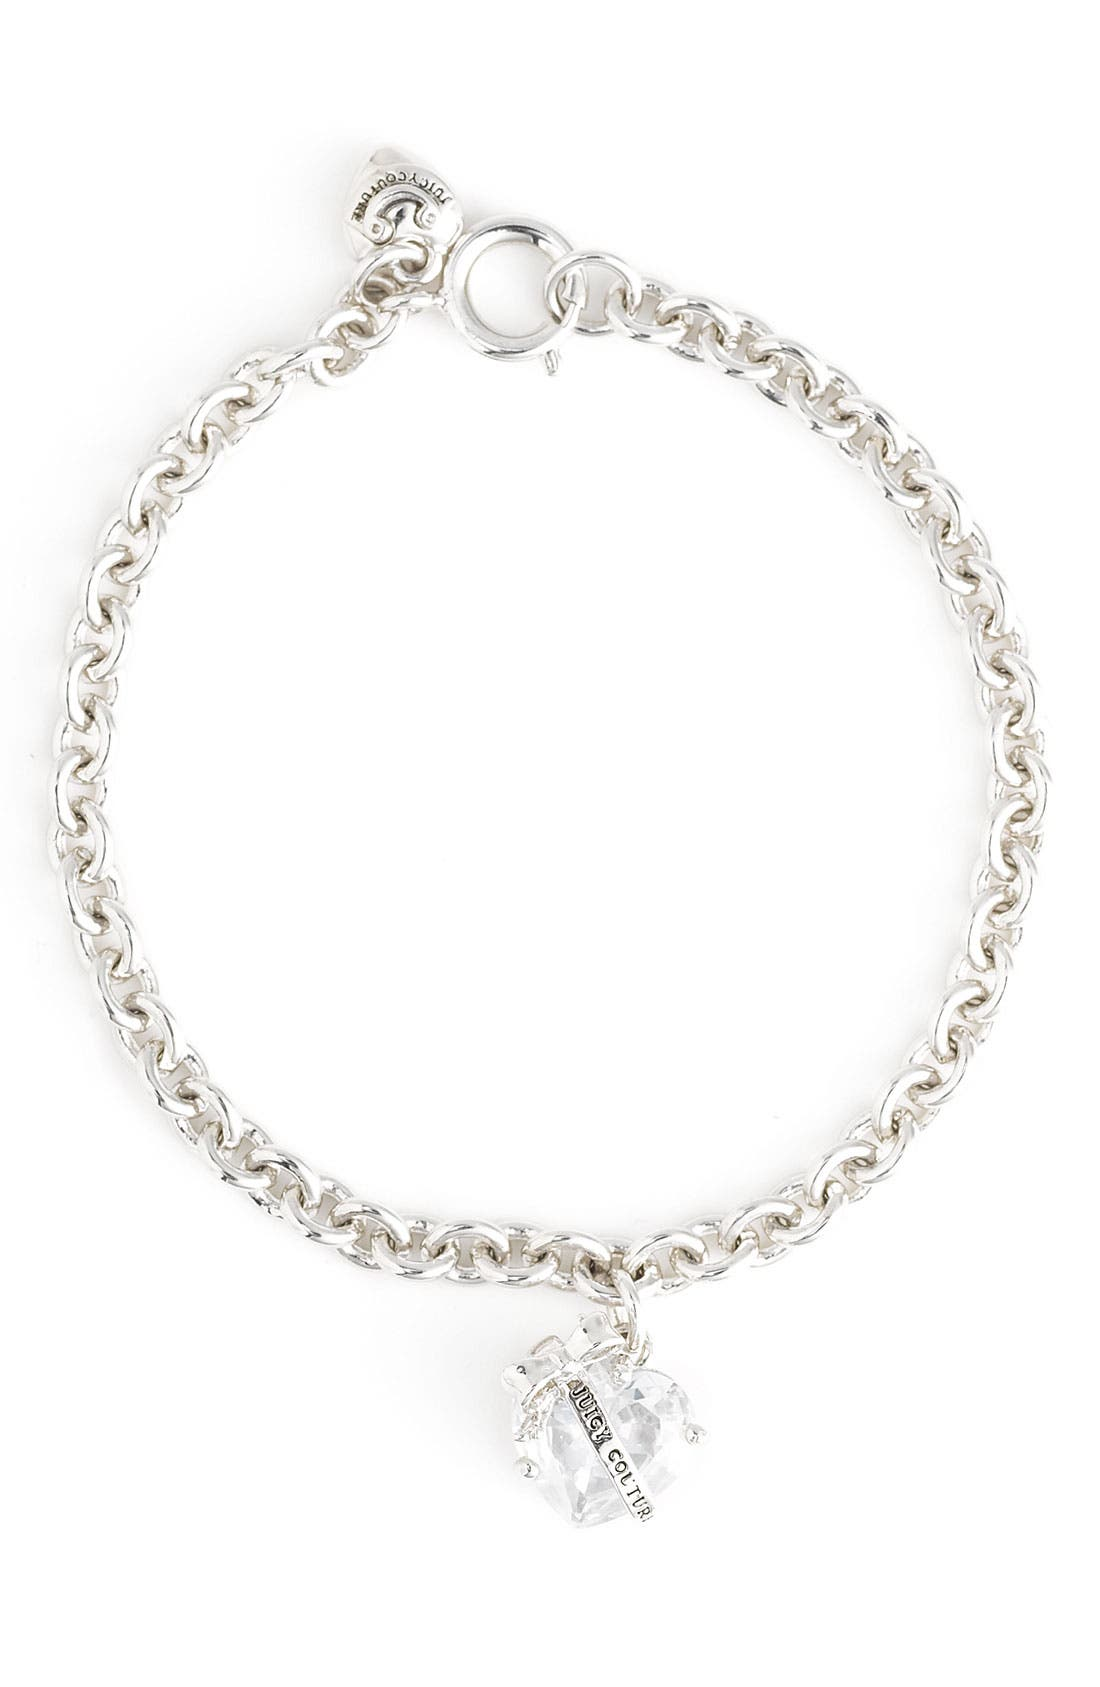 Main Image - Juicy Couture 'Wish' Banner Heart Bracelet